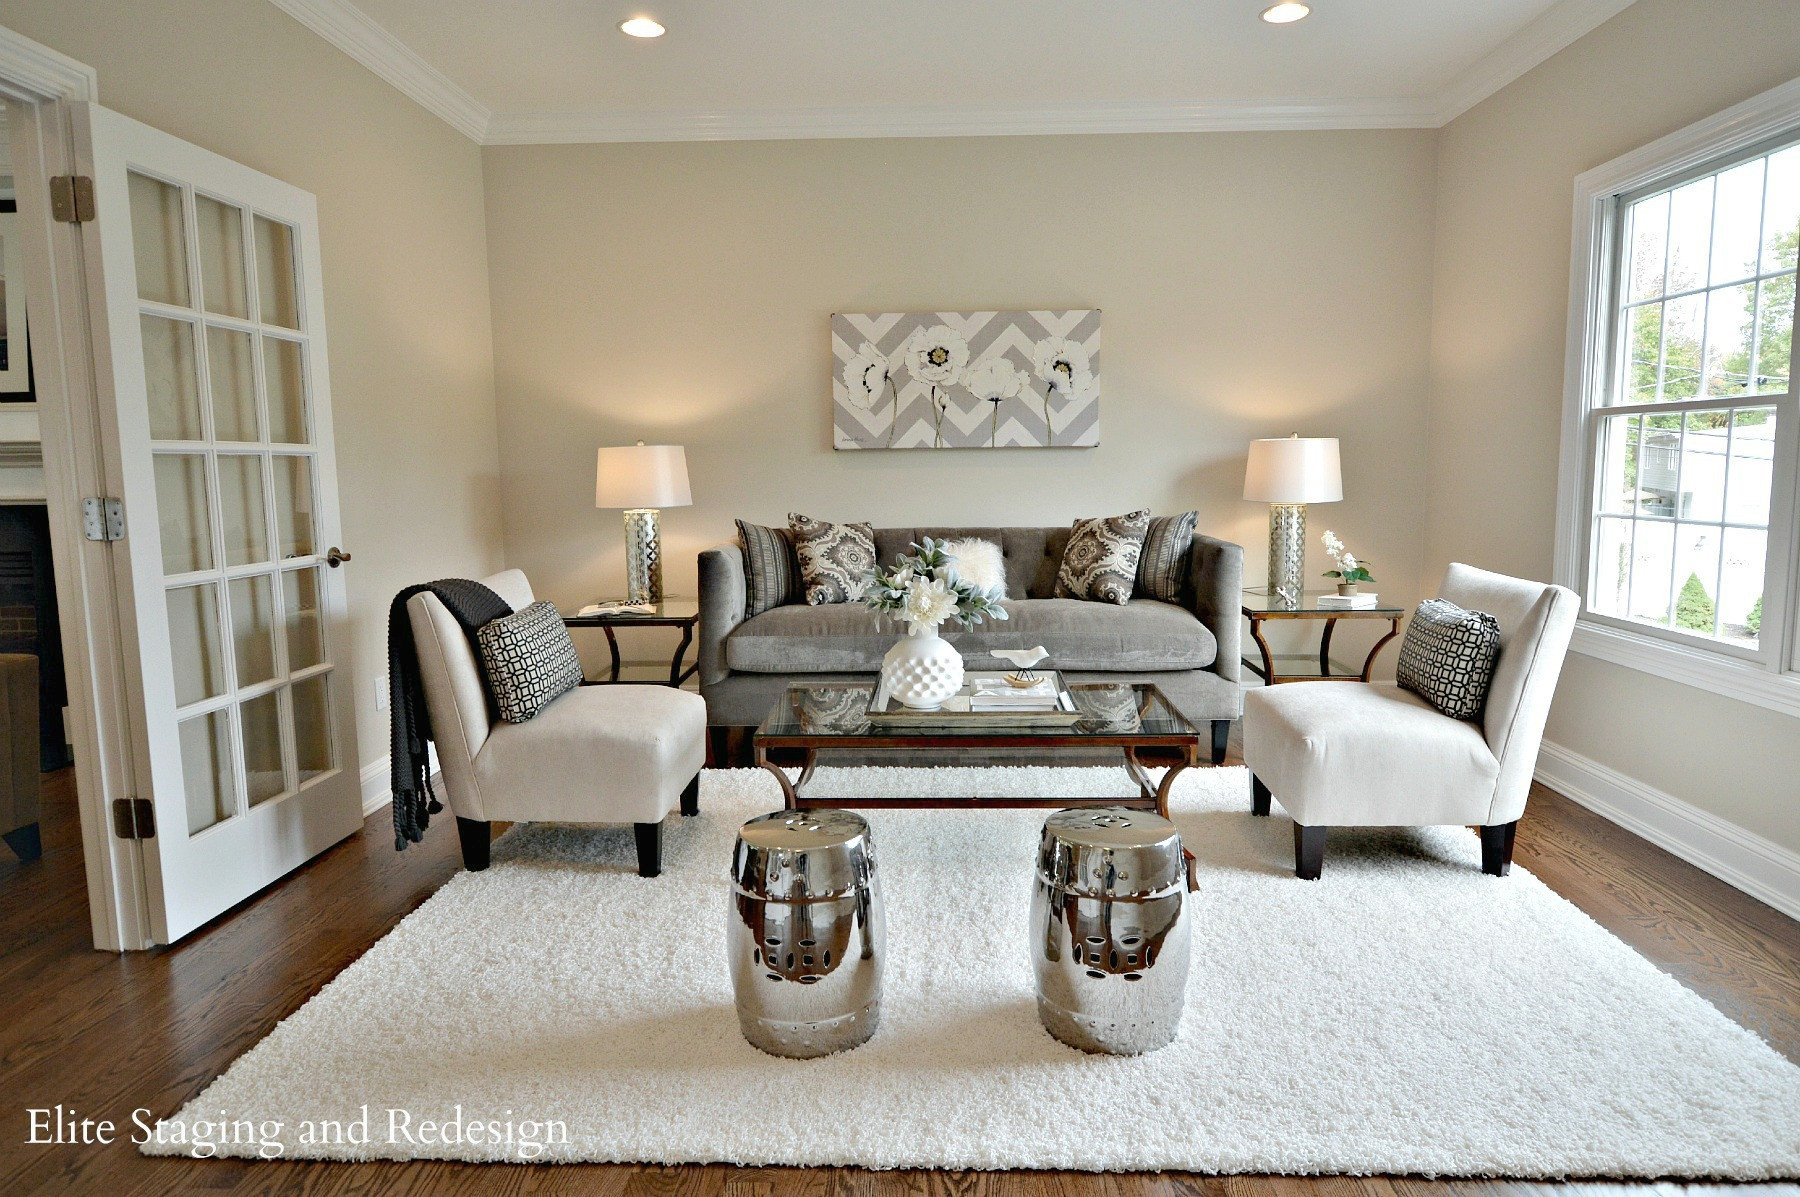 Small Living Room Staging Ideas Lovely Truths About Home Staging Elite Staging and Design